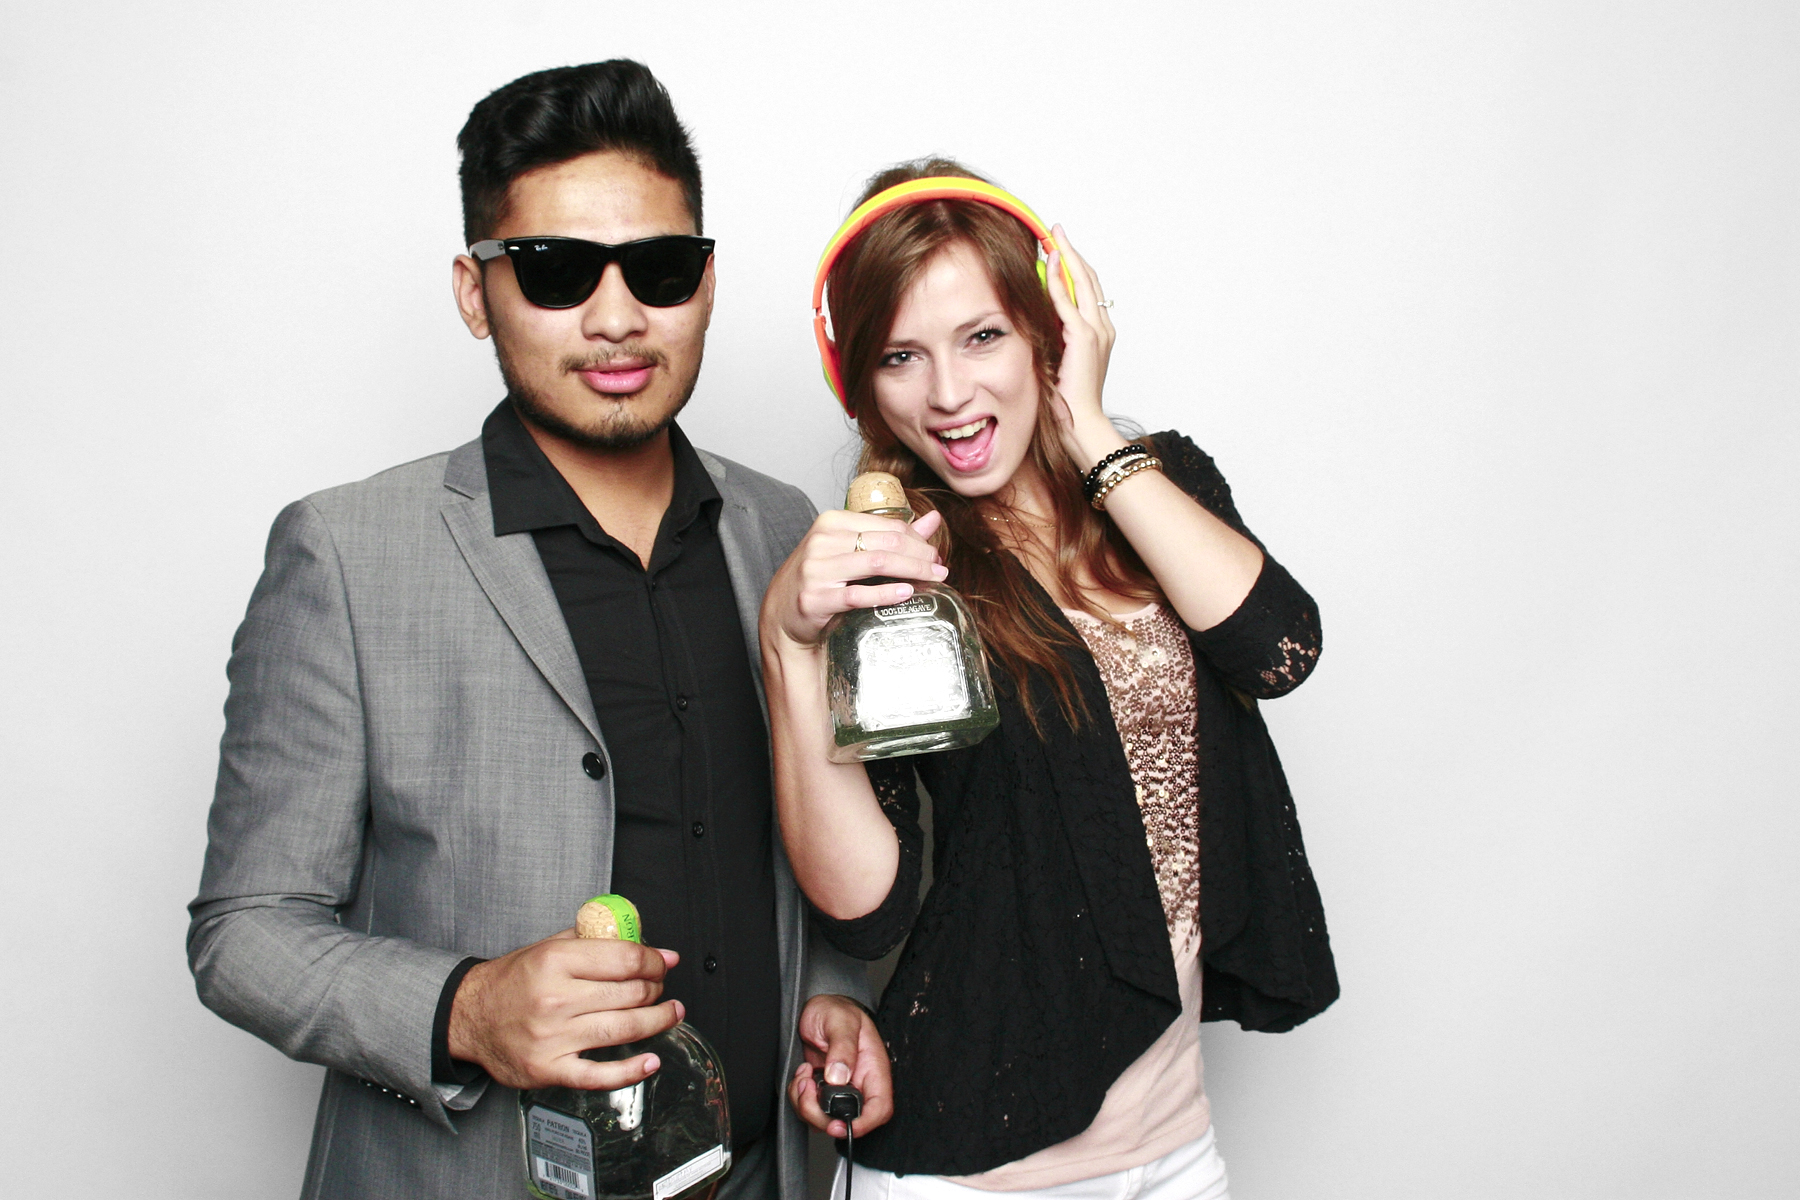 MTV VMA Viewing Party NYC couple posing with Patron bottles in The Booth